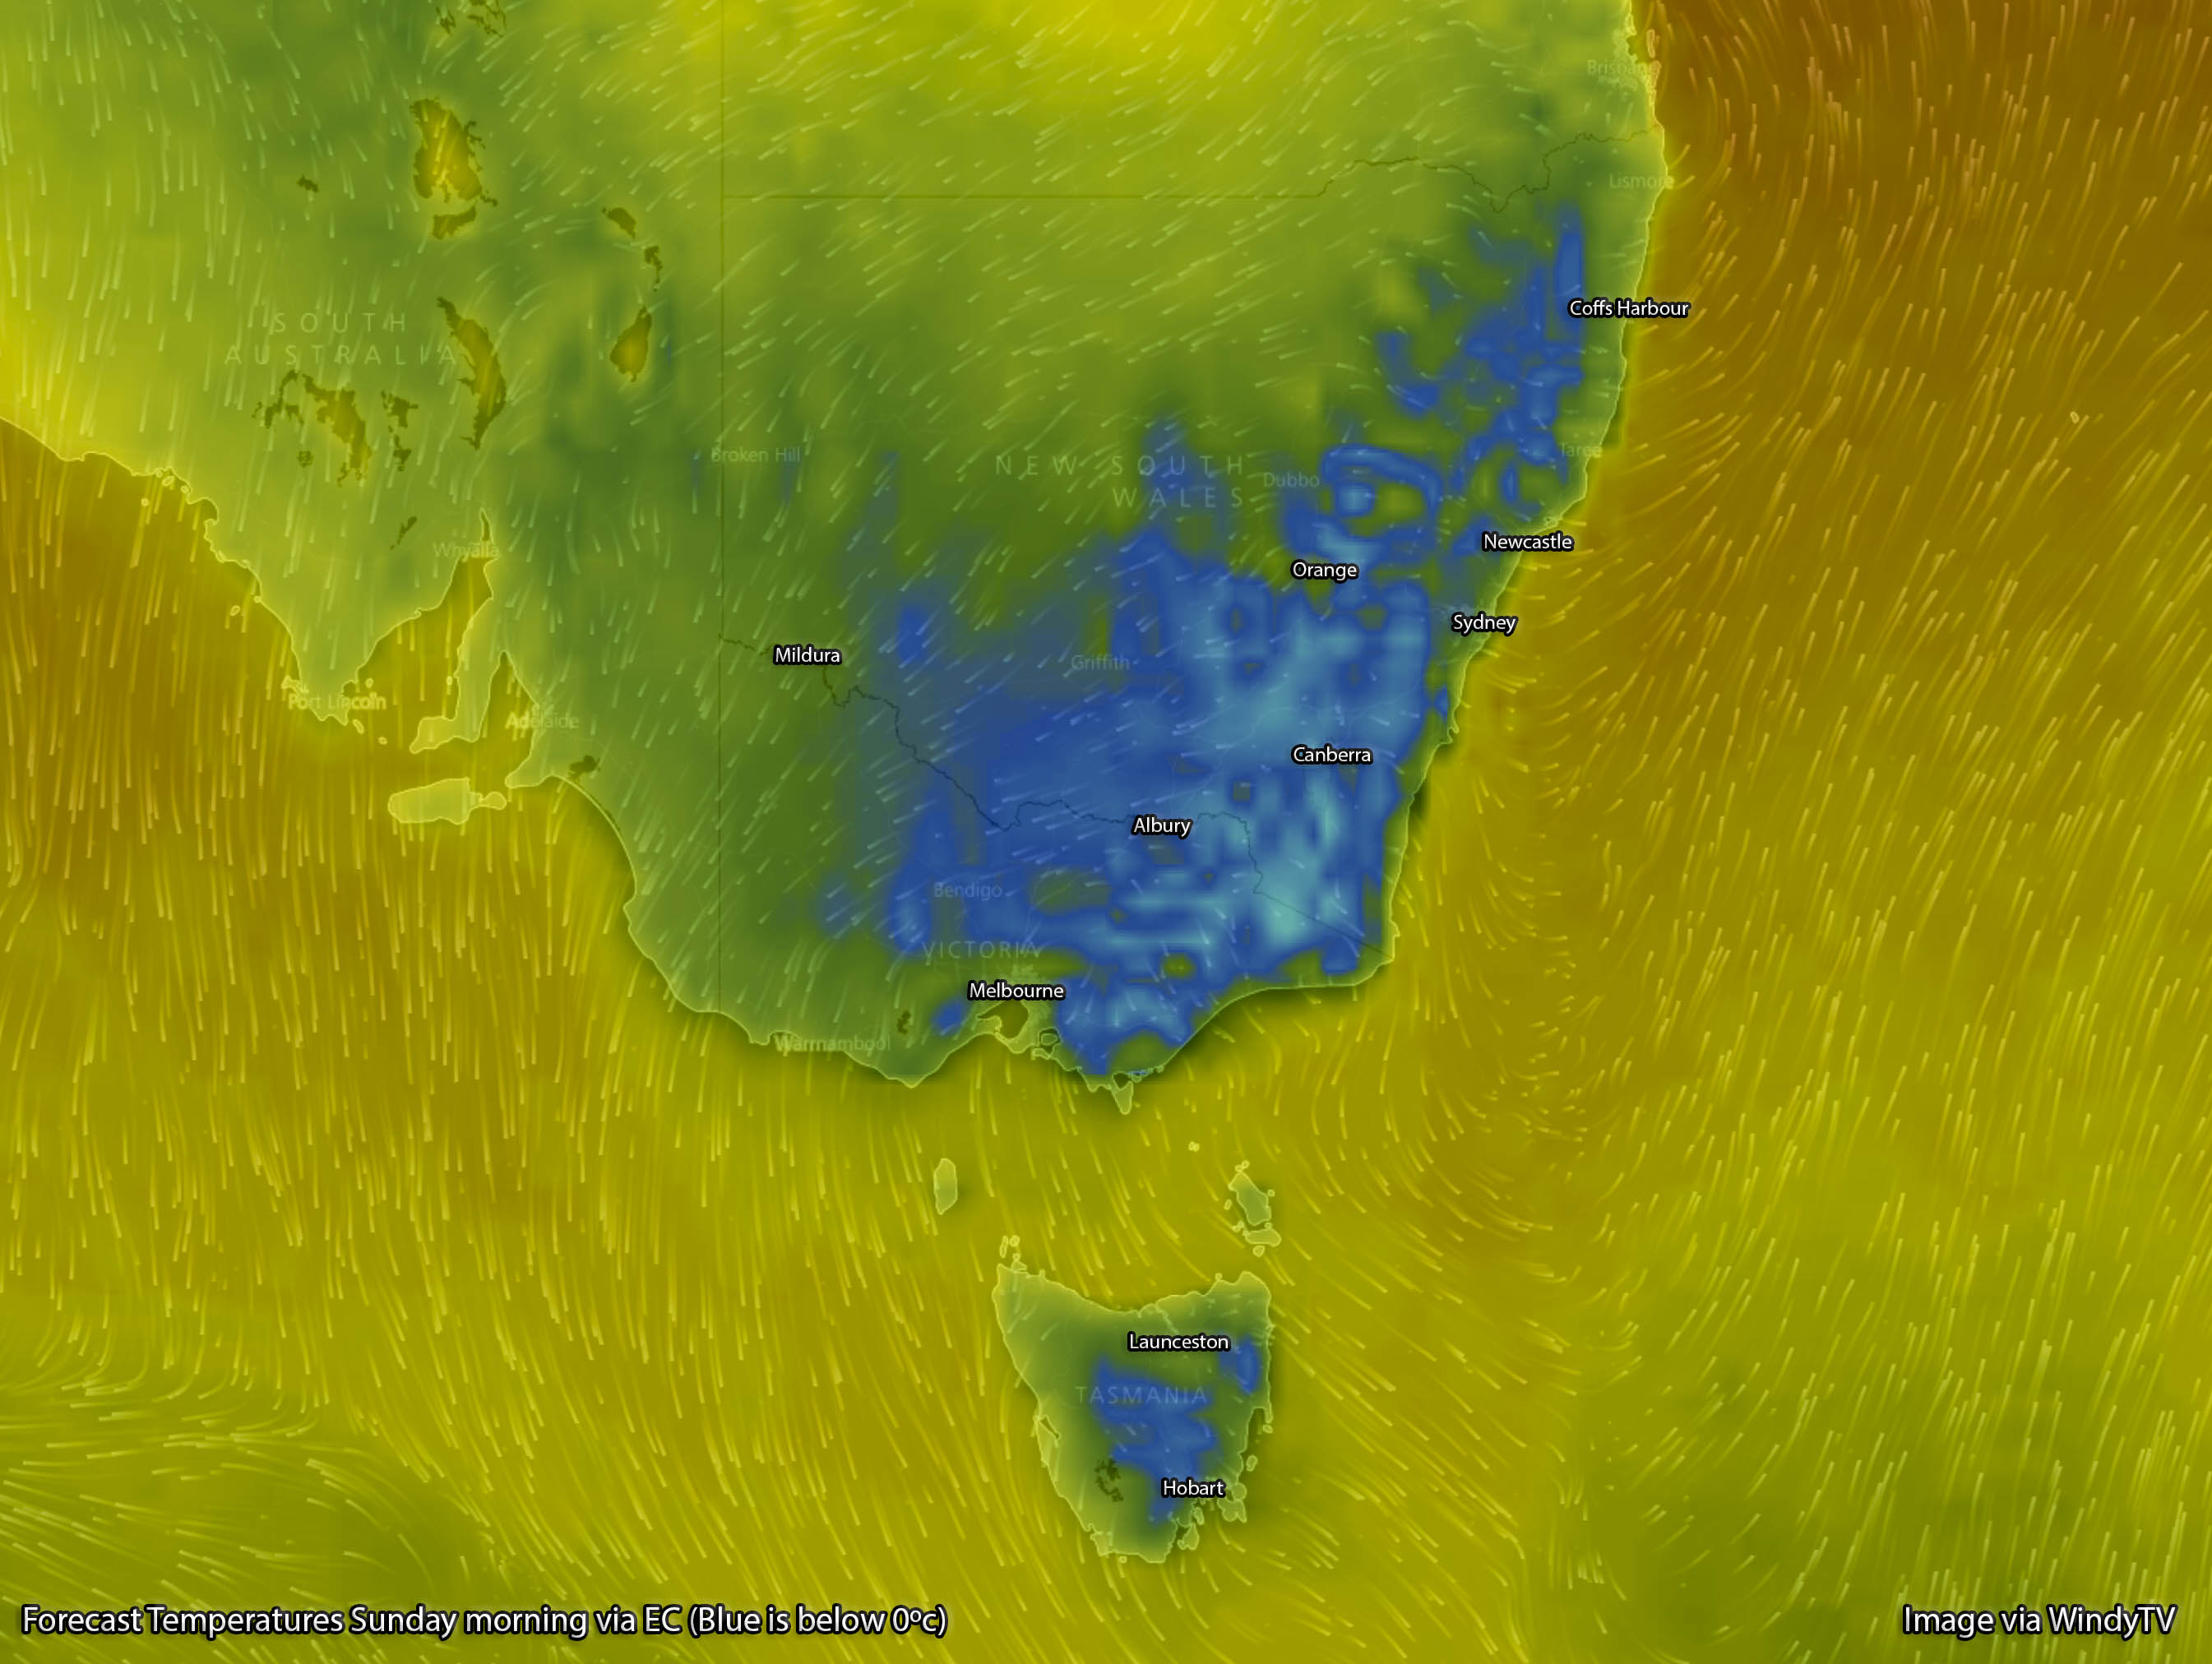 Forecast temperatures for Sunday Morning via EC / WindyTV - Blue colouring is below 0ºc, aqua is below -5ºc